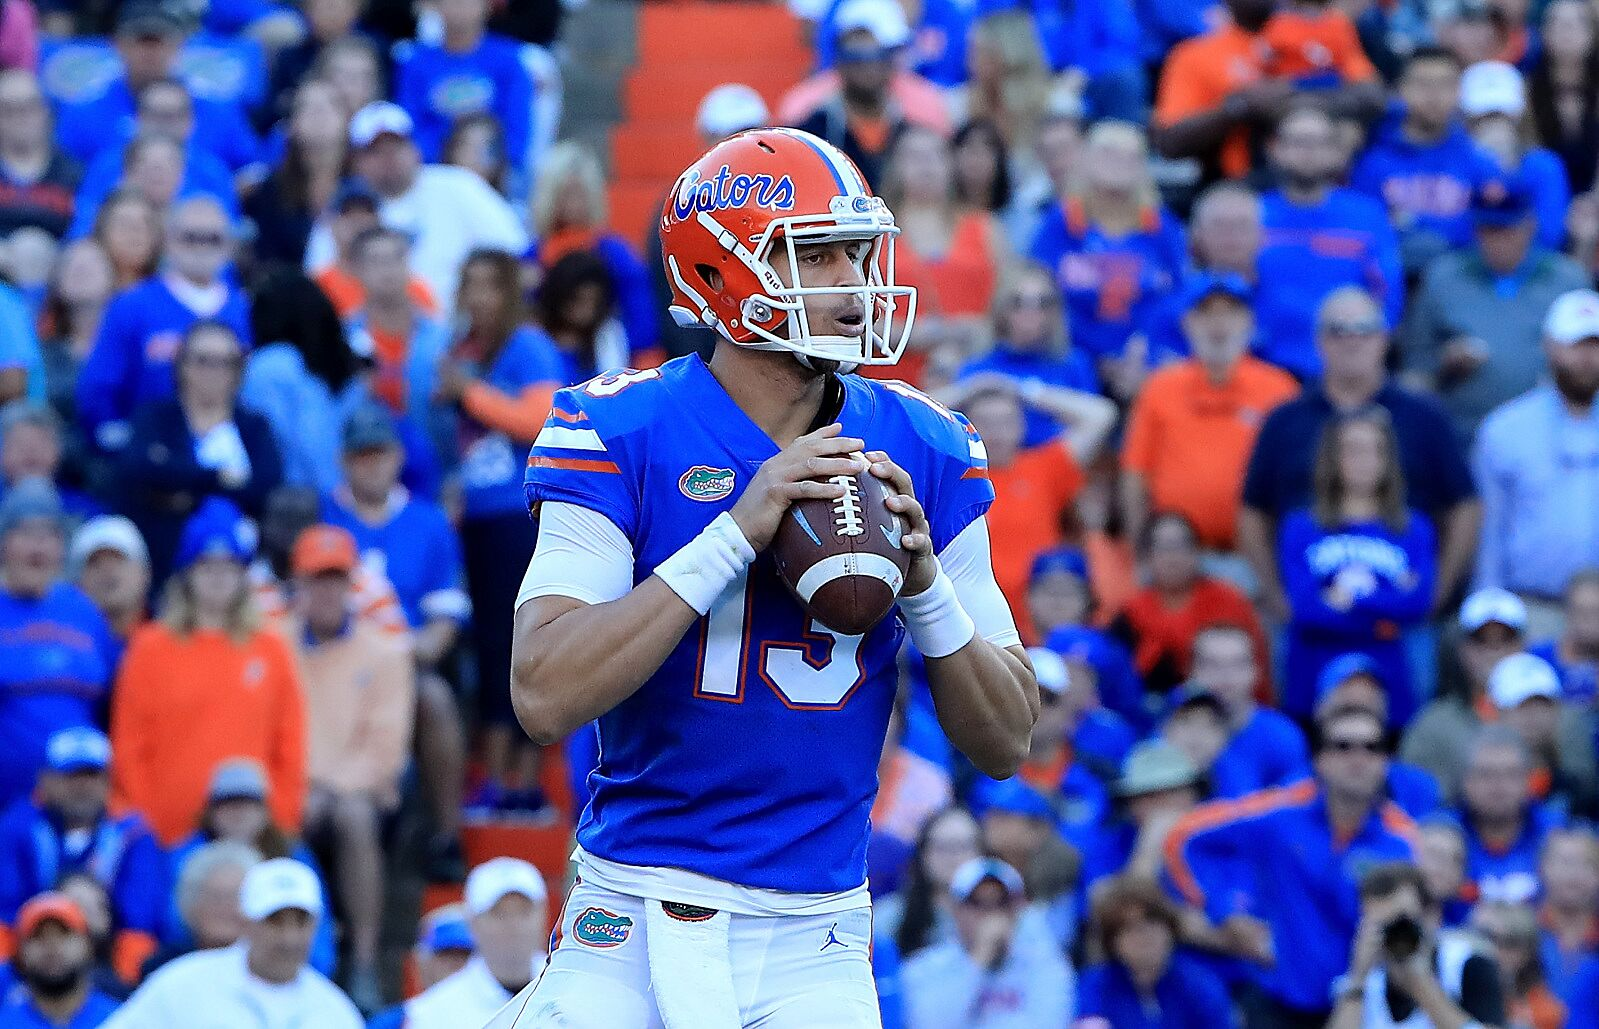 SEC Football: Each team's top Heisman Trophy candidate for